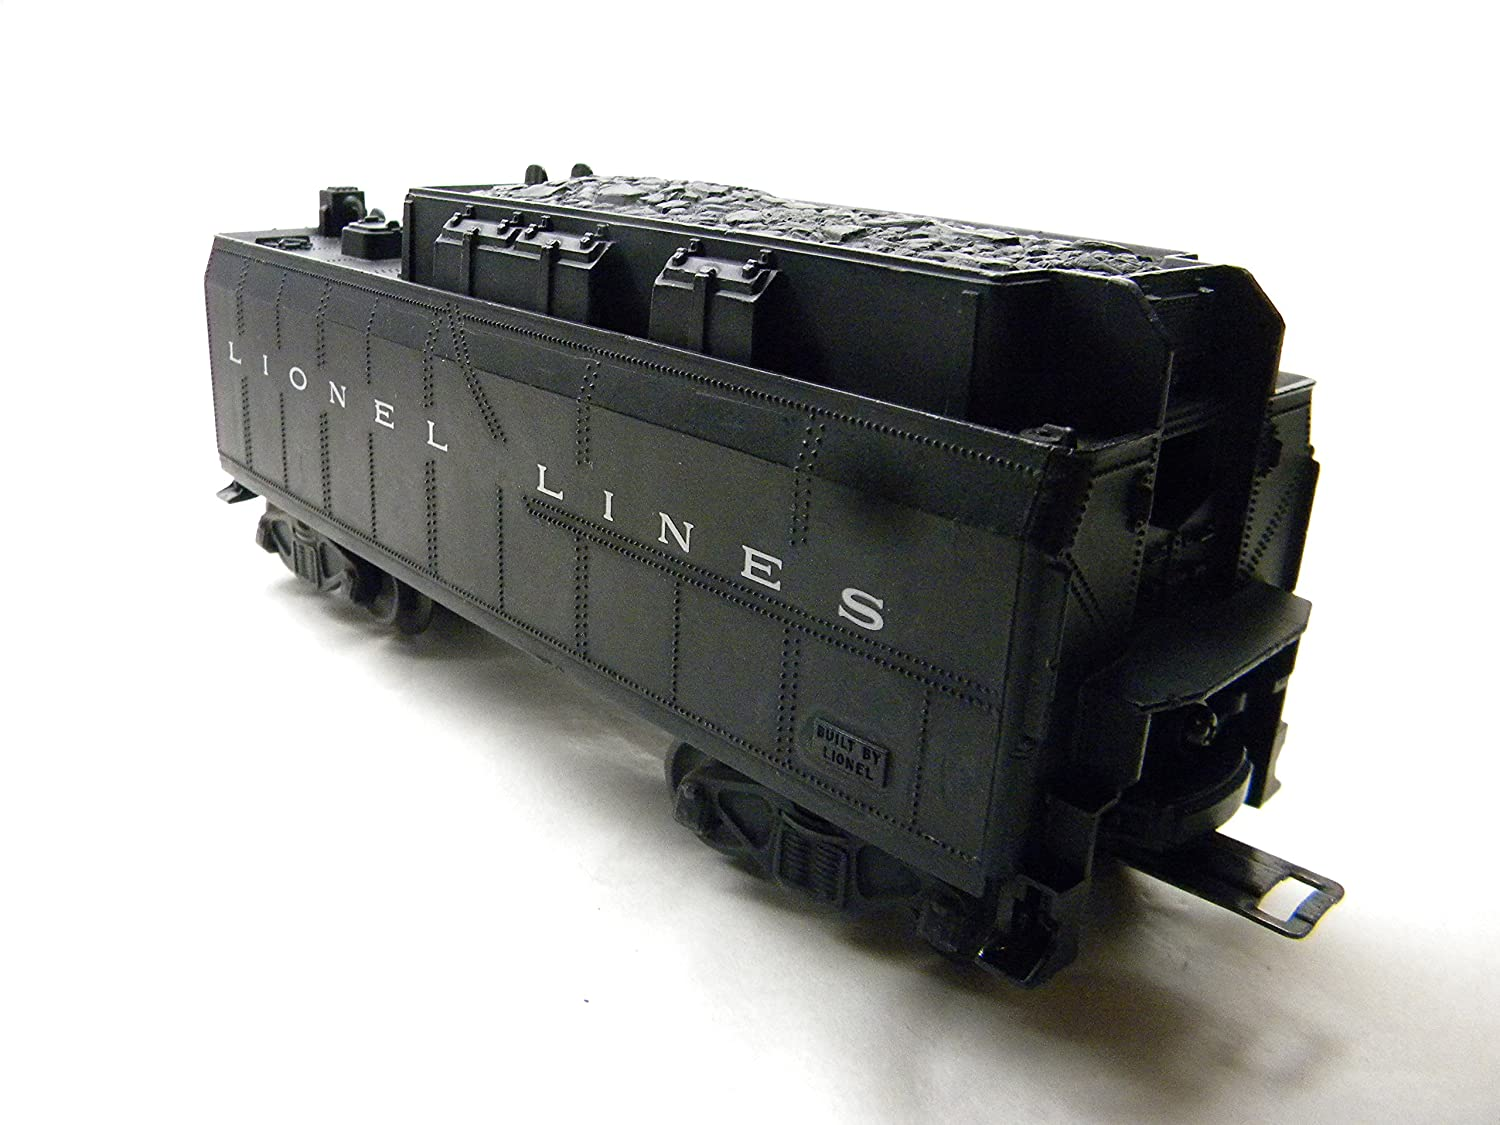 155 Lionel Trains 2046w Tender Wiring Diagram | Wiring LibraryWiring Library